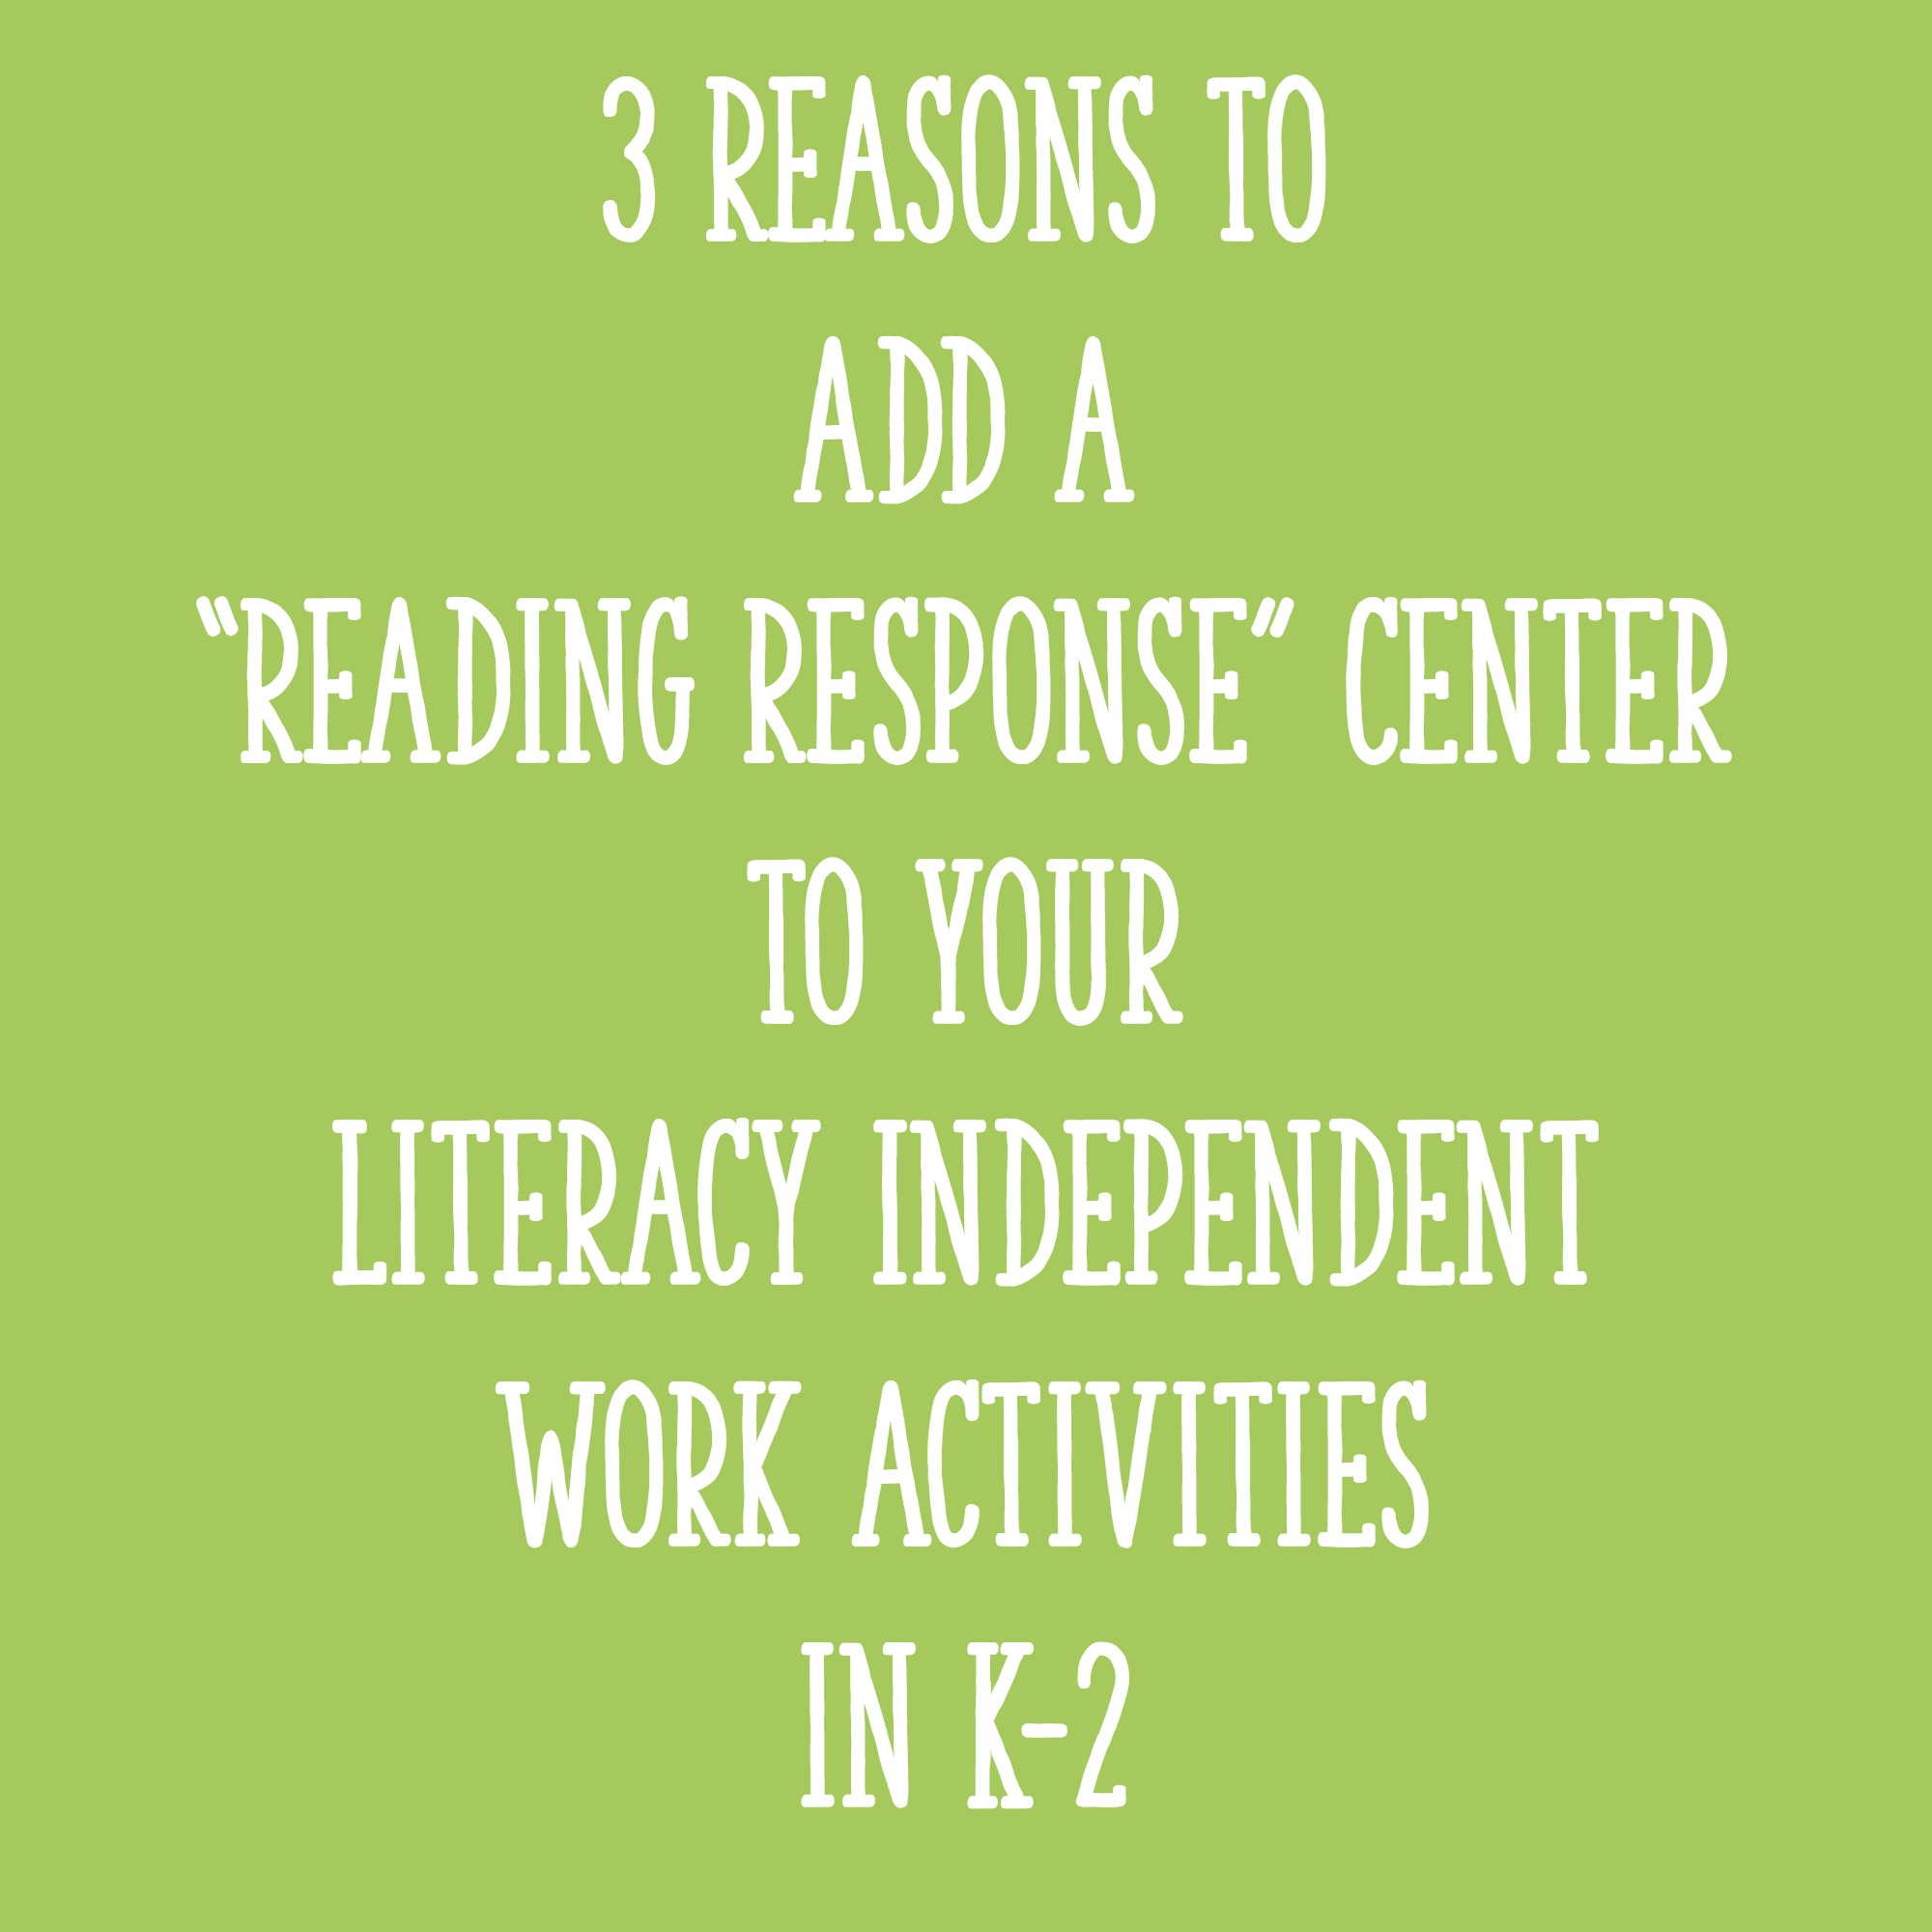 3 reasons to add a reading response center to your literacy